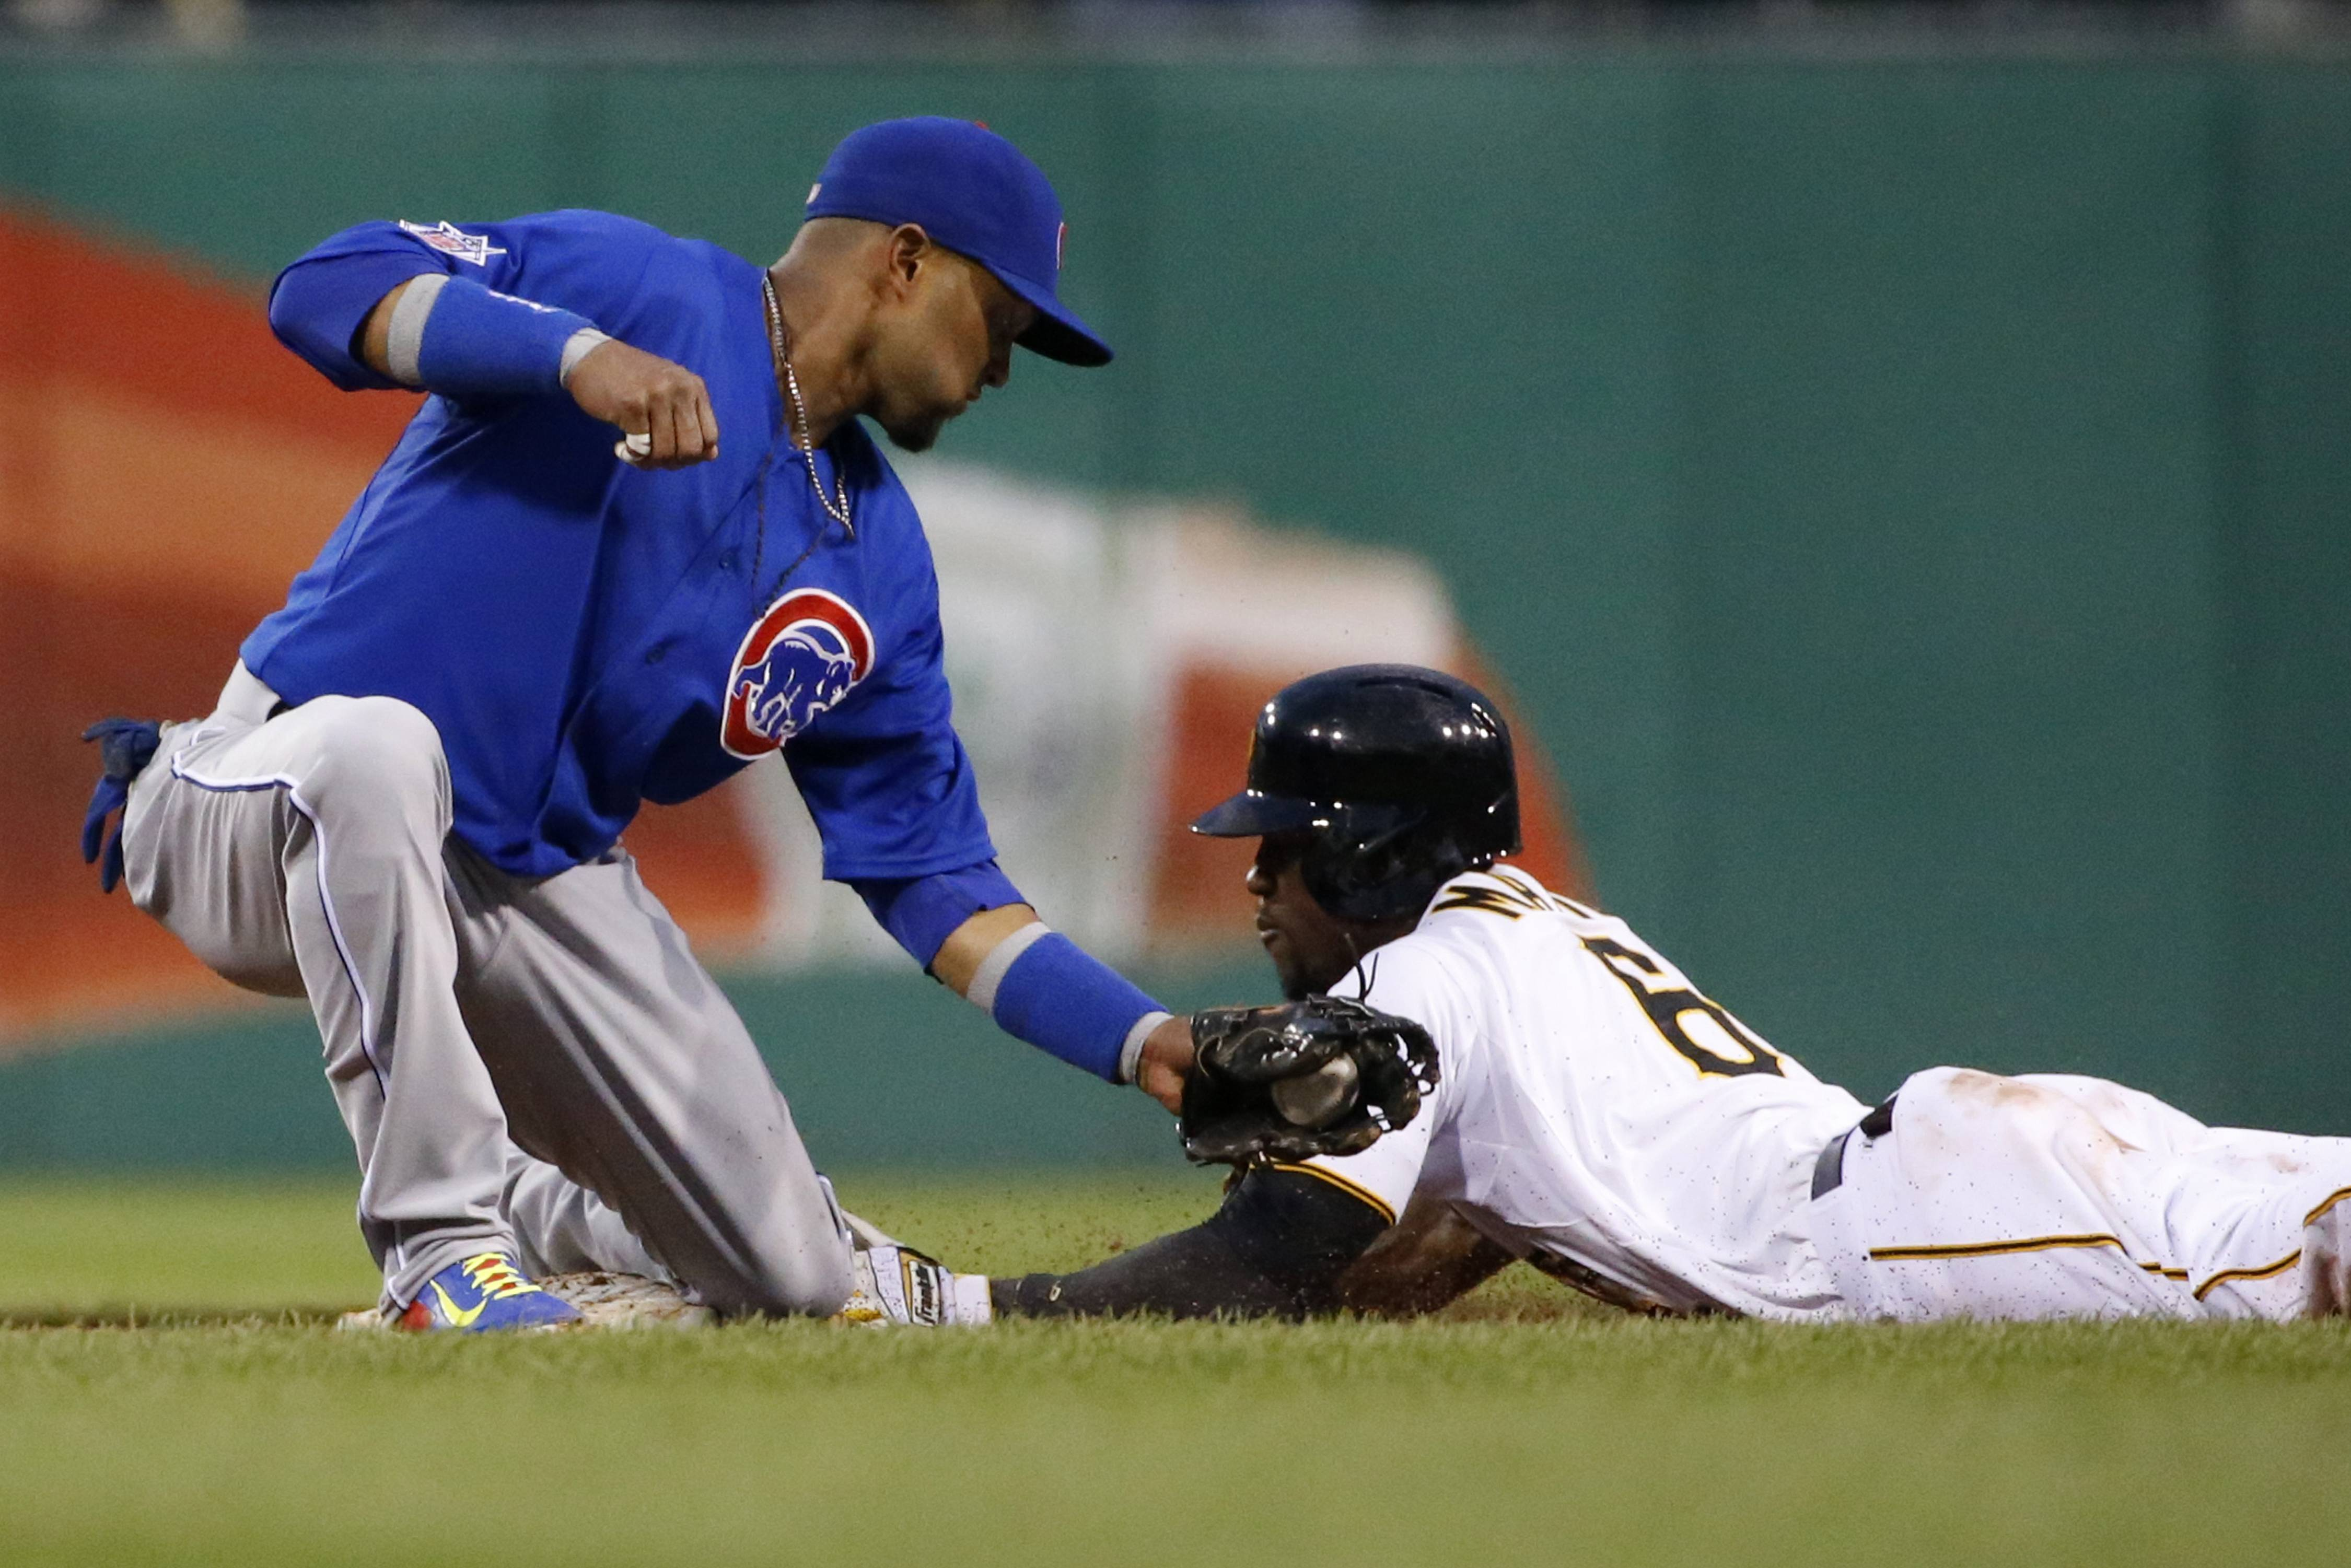 The Pirates' Starling Marte gets to second base ahead of the tag by Cubs second baseman Emilio Bonifacioto during the sixth inning of Monday's game in Pittsburgh.